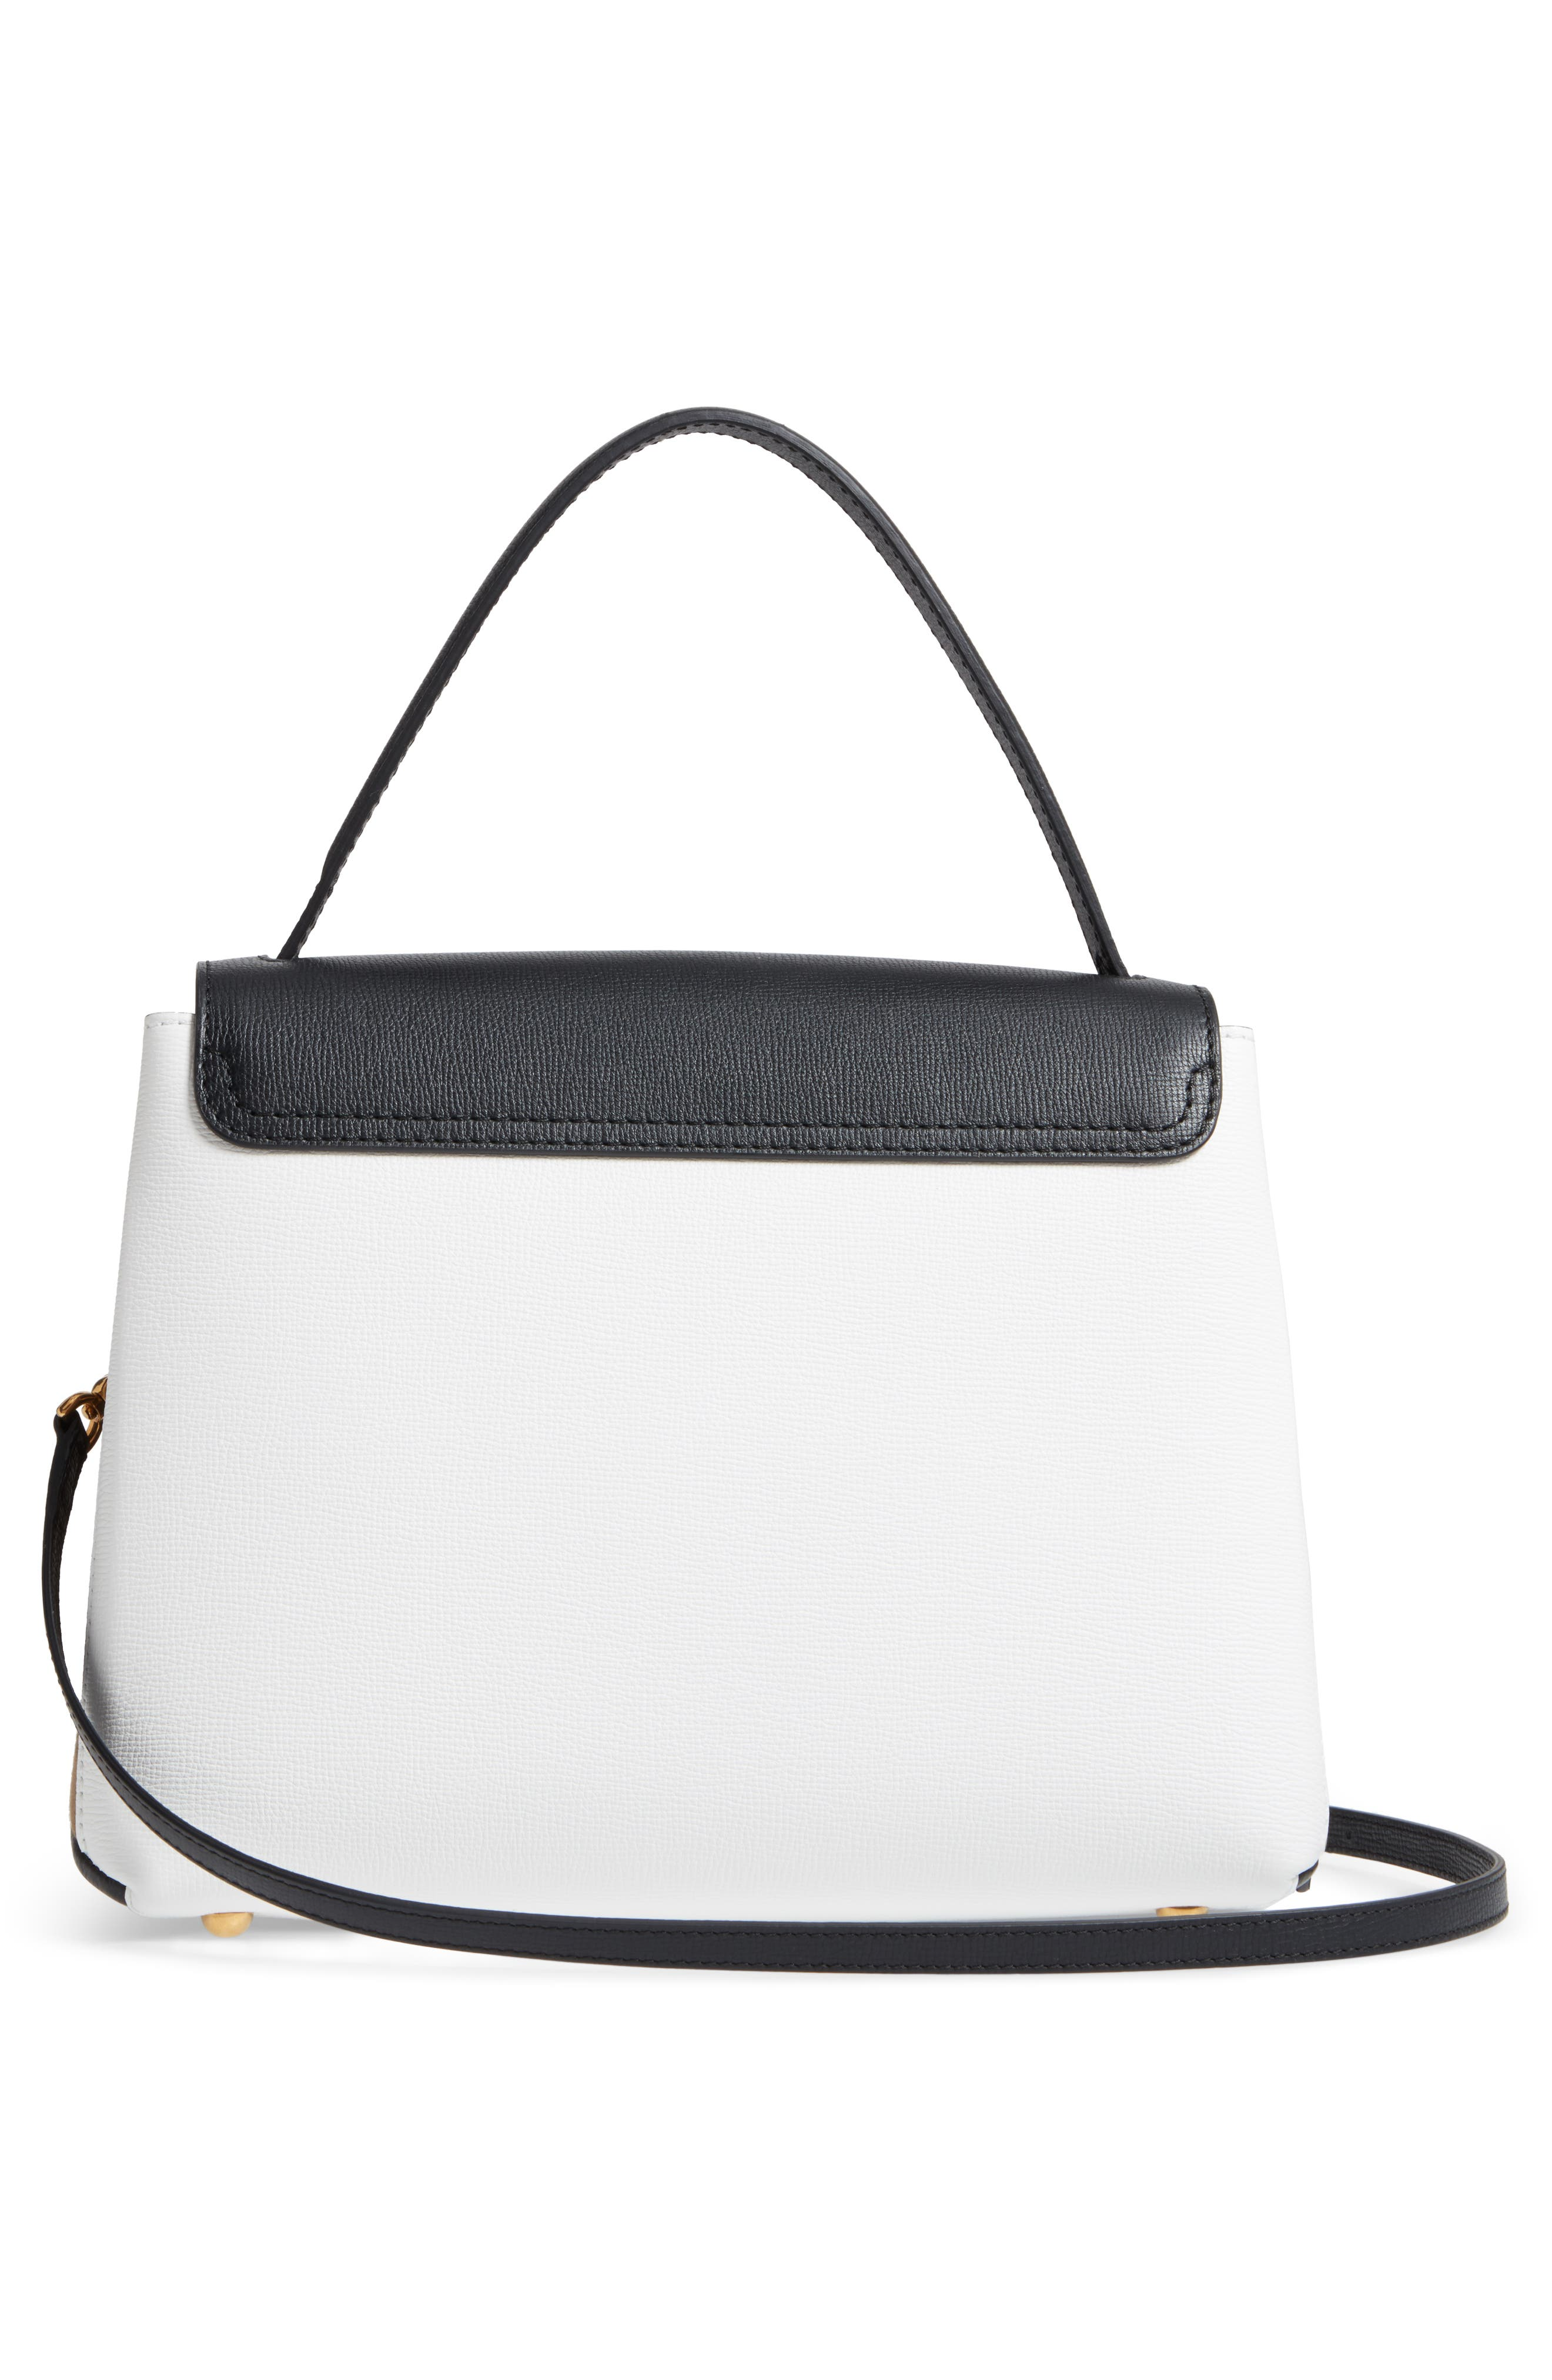 Medium Camberley Colorblock Leather & House Check Top Handle Satchel,                             Alternate thumbnail 3, color,                             White/ Black